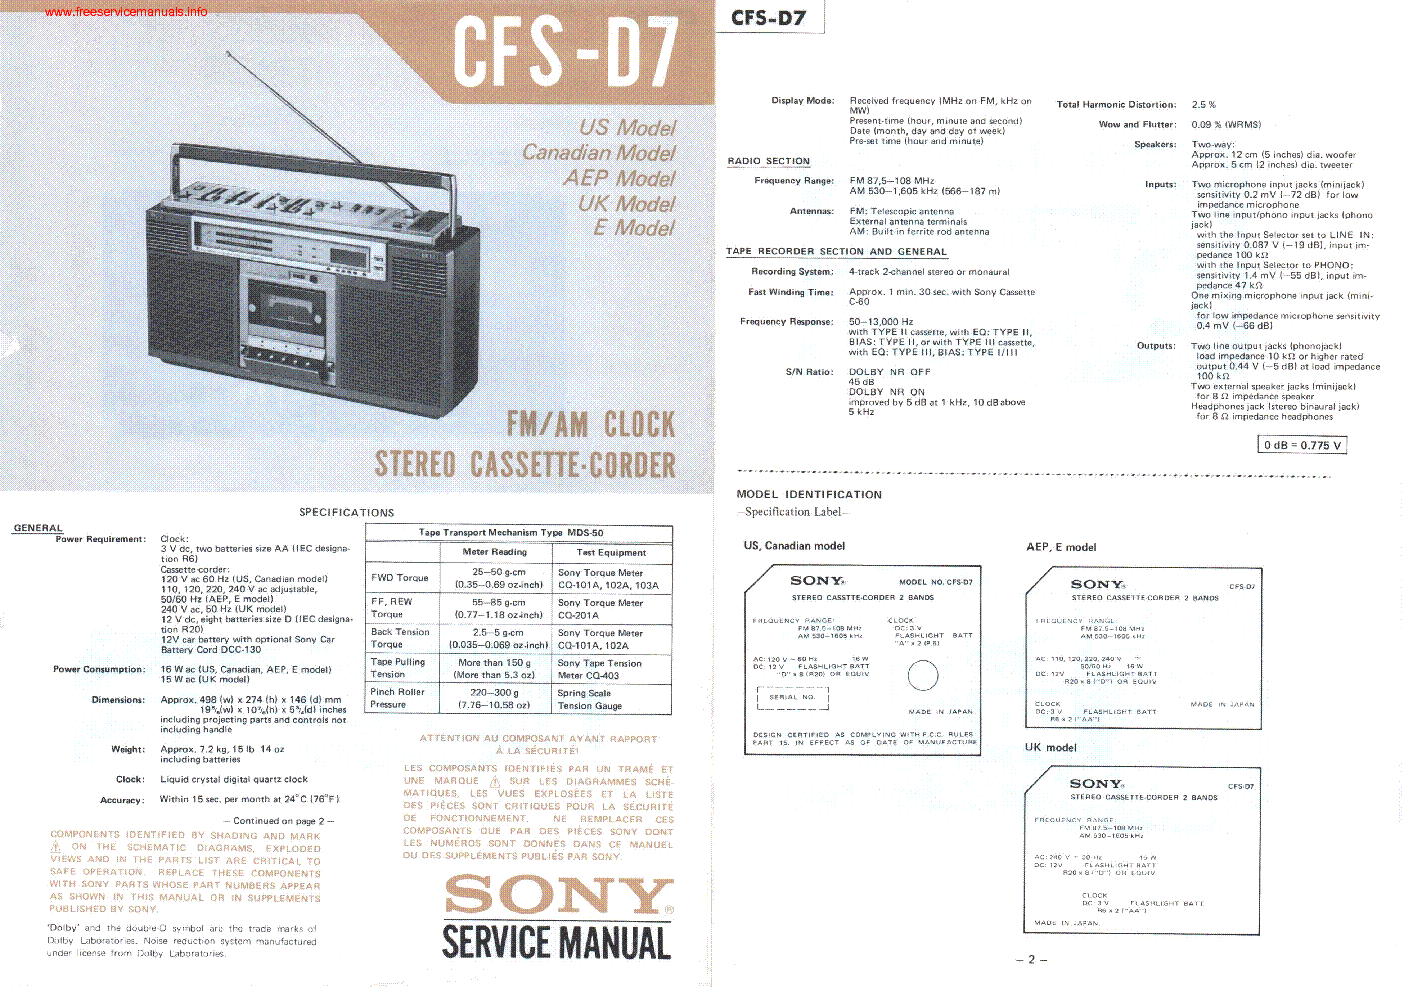 SONY CDX-3160 SM Service Manual download, schematics, eeprom, repair on engine diagrams, troubleshooting diagrams, gmc fuse box diagrams, honda motorcycle repair diagrams, transformer diagrams, smart car diagrams, electrical diagrams, hvac diagrams, led circuit diagrams, battery diagrams, snatch block diagrams, friendship bracelet diagrams, internet of things diagrams, pinout diagrams, motor diagrams, series and parallel circuits diagrams, sincgars radio configurations diagrams, lighting diagrams, electronic circuit diagrams, switch diagrams,